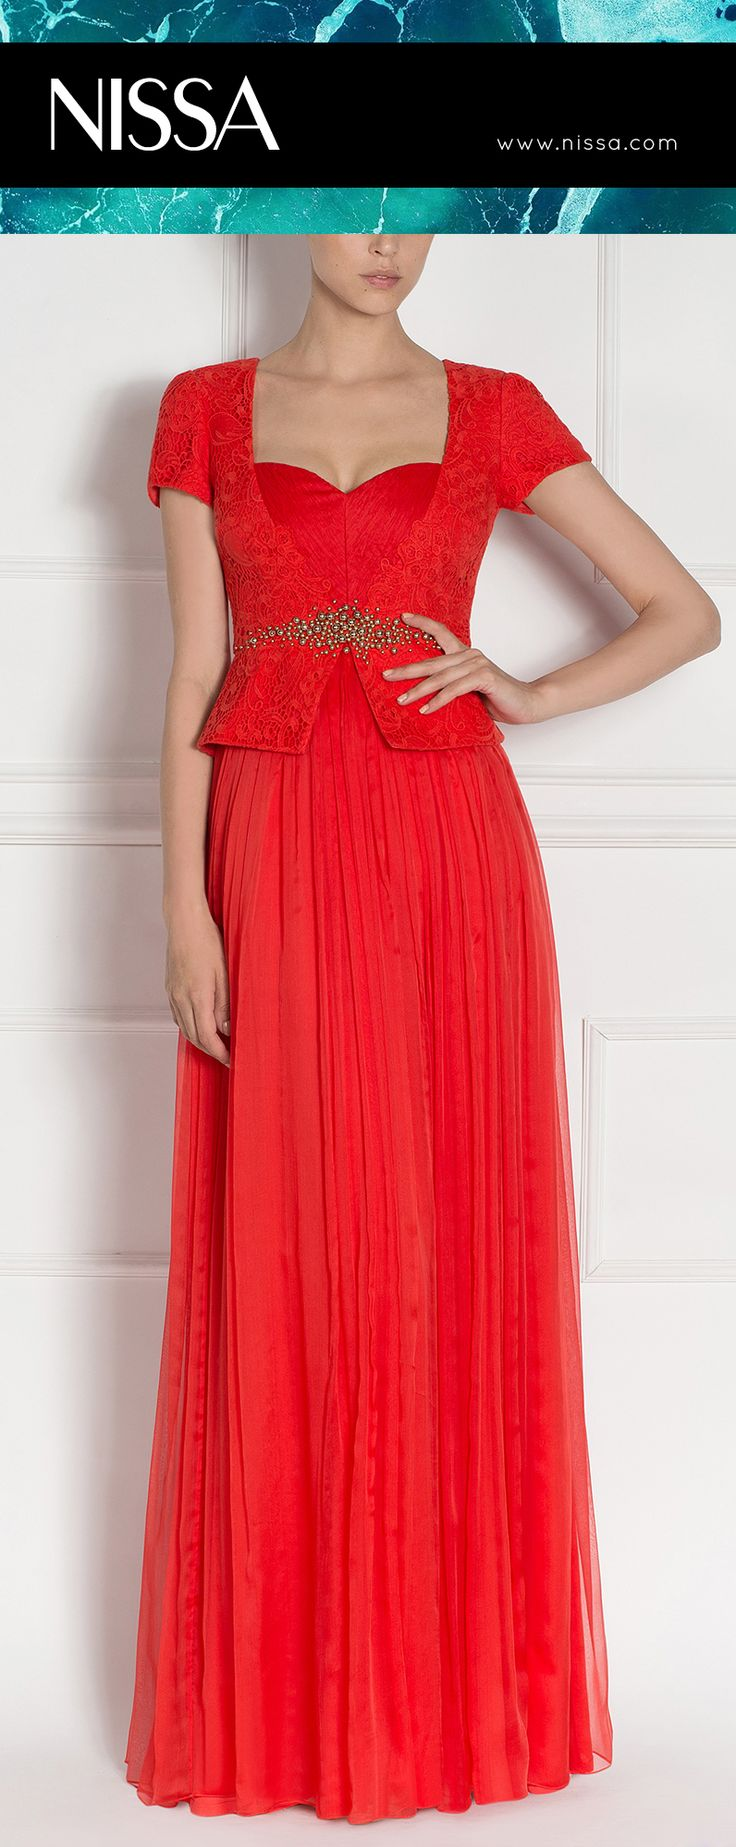 #nissa #evening #dress #red #embroidery #crystals #fashion #look #style #glamorous